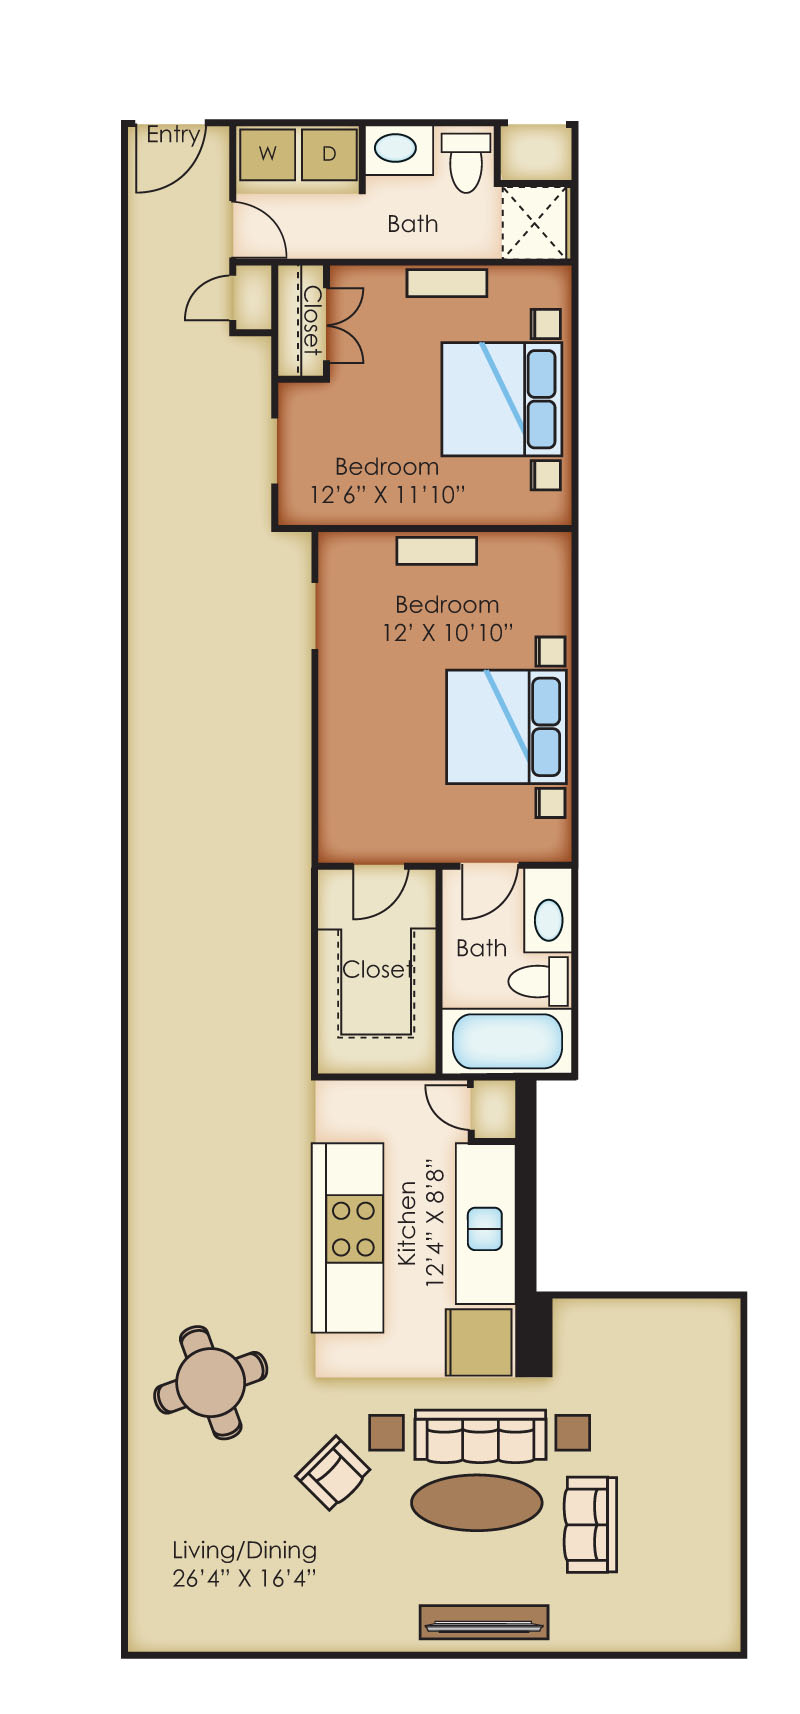 The Cannery Lofts Apartment Homes - 2 Bedroom 2 Bath Apartment